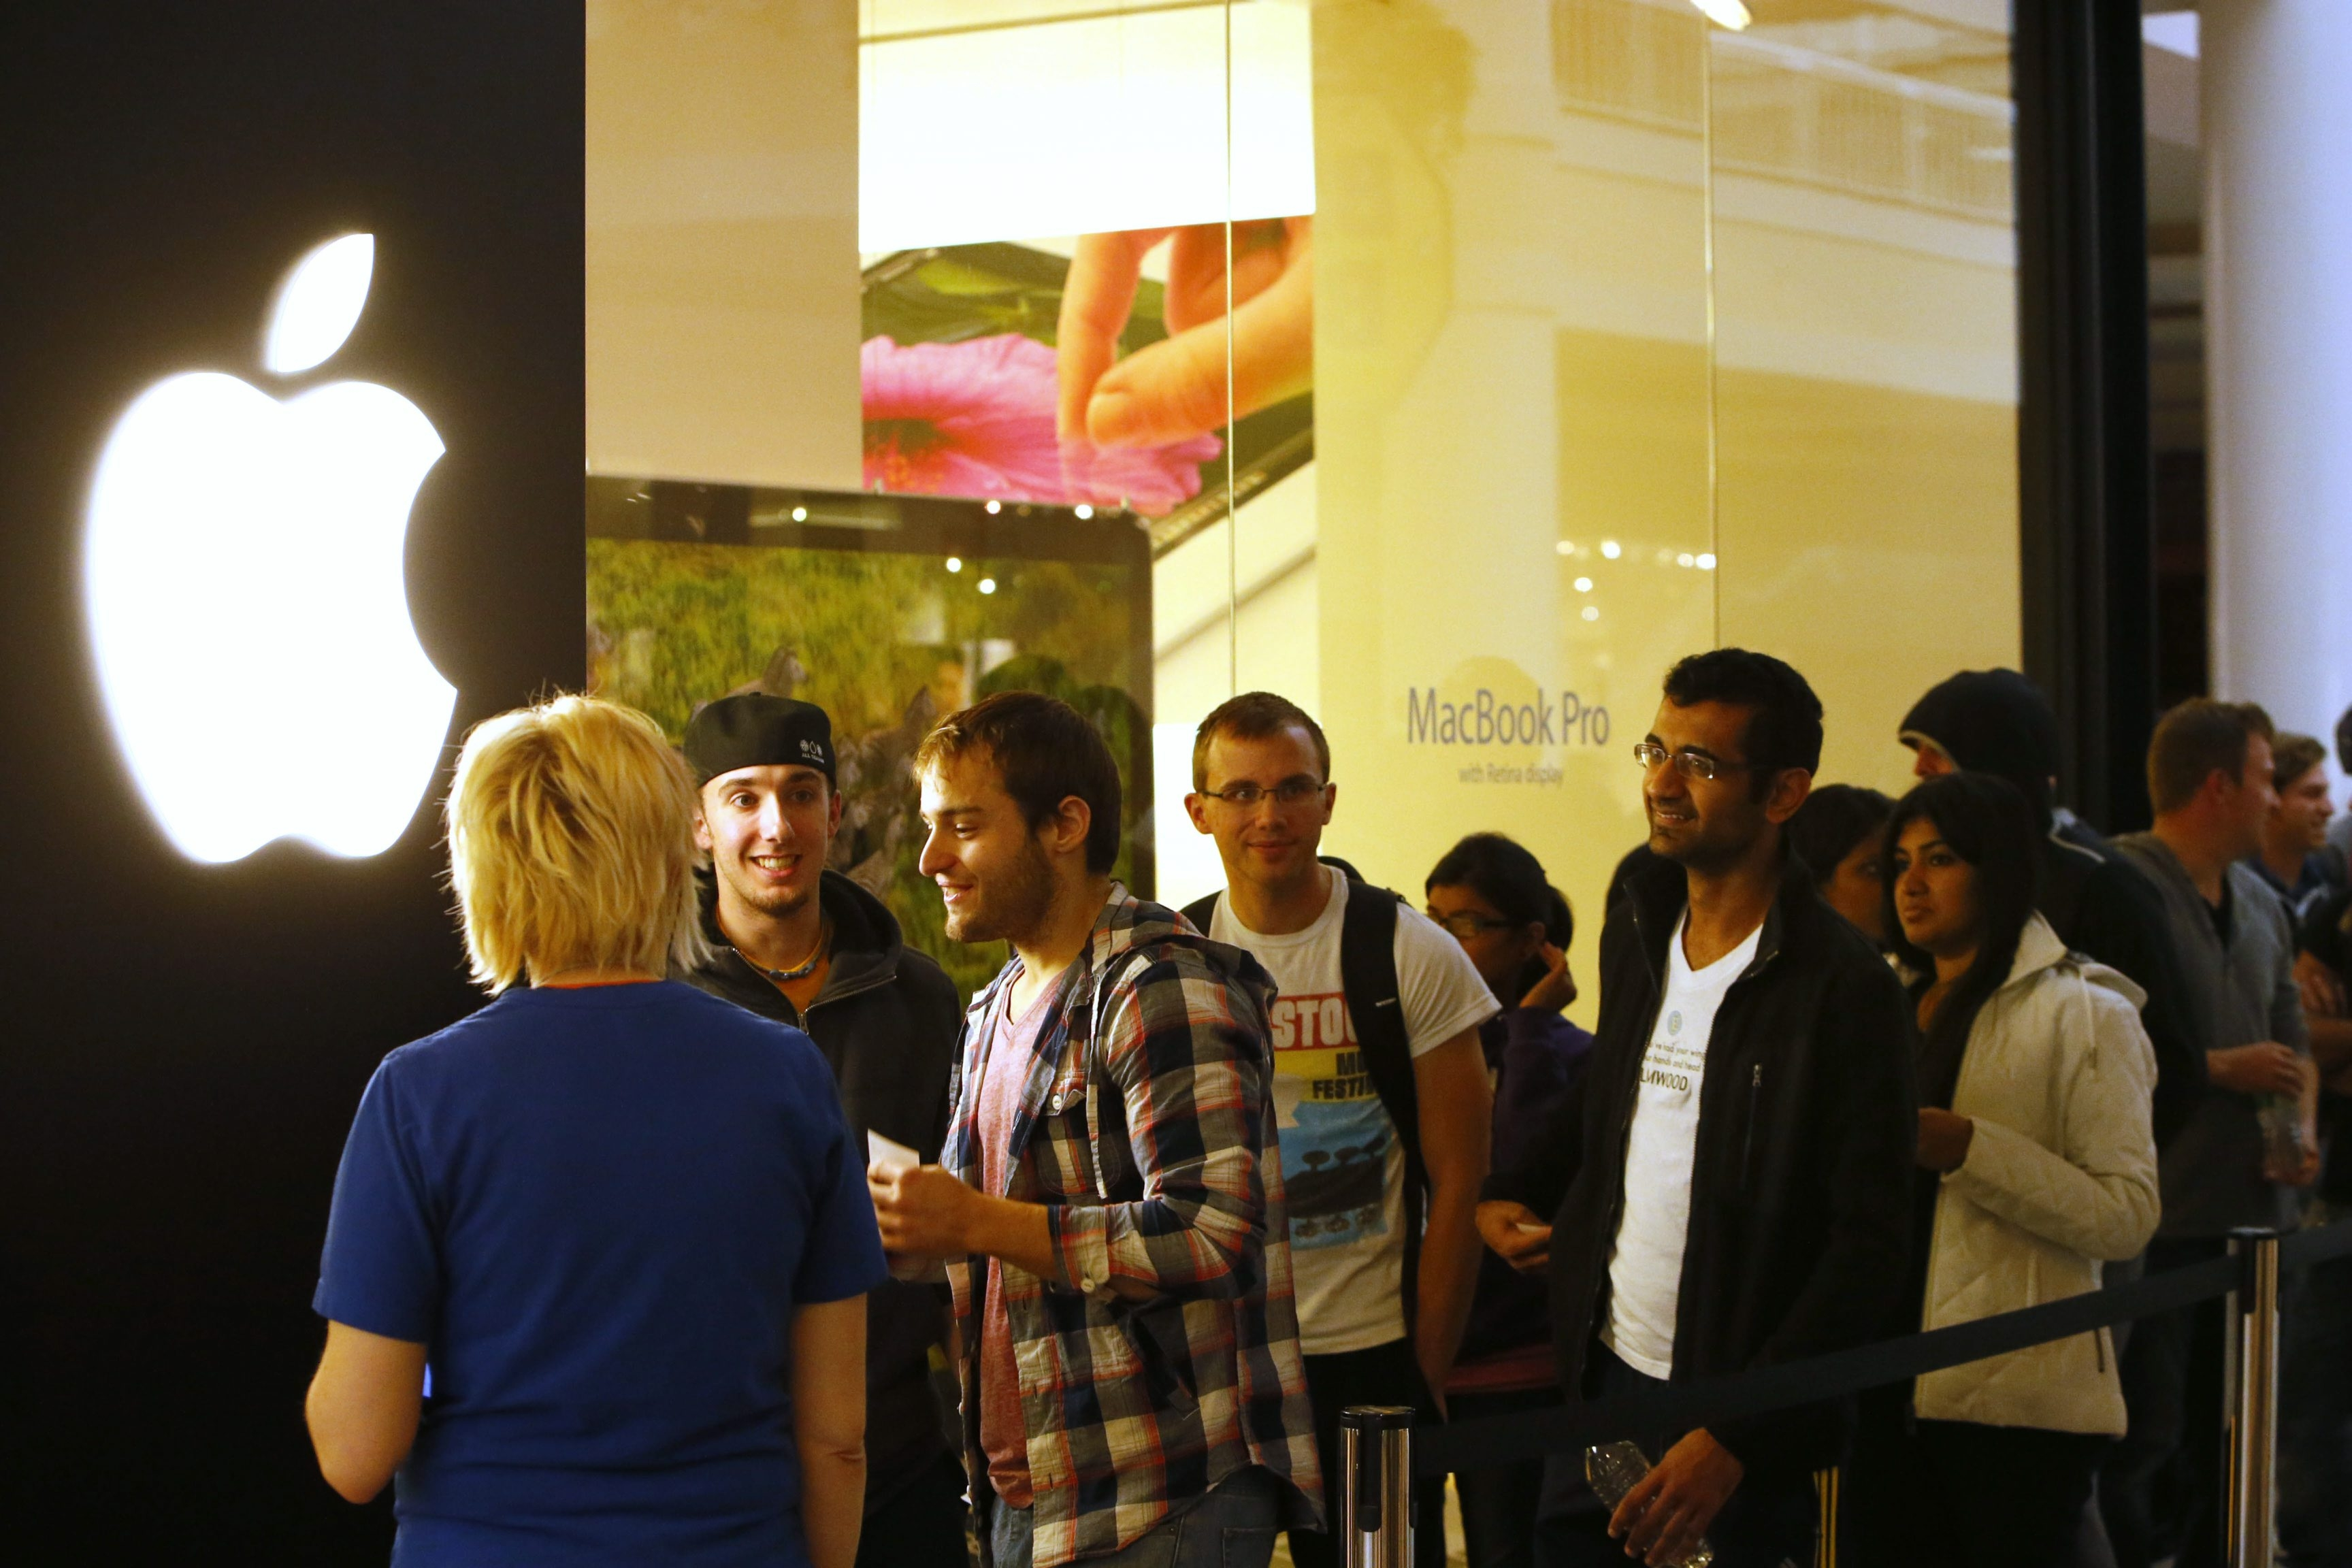 Derek Gee/Buffalo News    Apple enthusiasts wait in line outside the Apple Store at the Walden Galleria early Friday  purchase the new iPhone 5. Some of the more patient fans waited as long as eight hours.